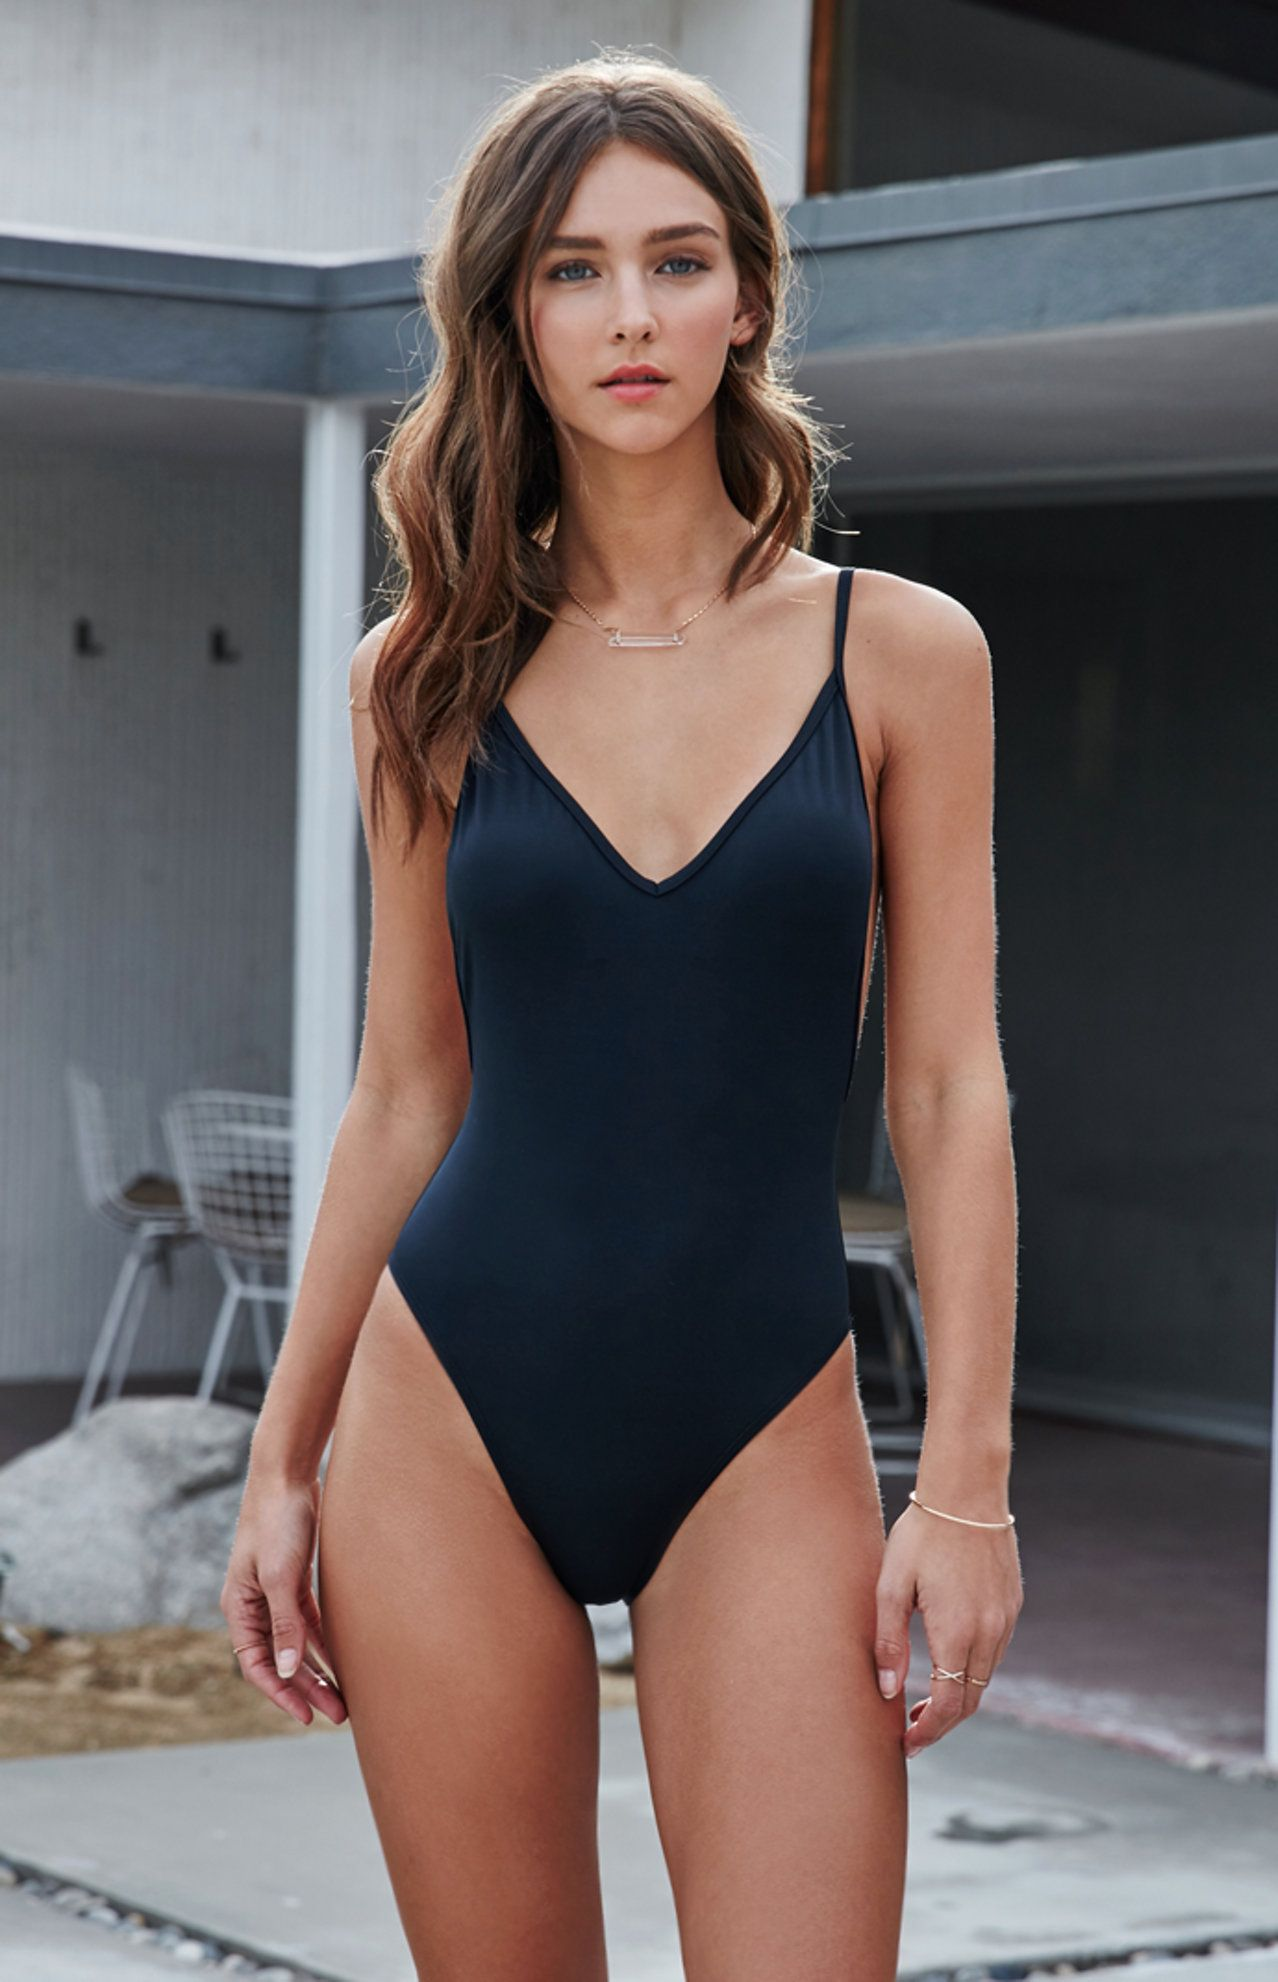 68ebe3c52615 Rachel #Cook Black Swimsuit, Plunging One Piece Swimsuit, Promis, Swimsuits  For Small